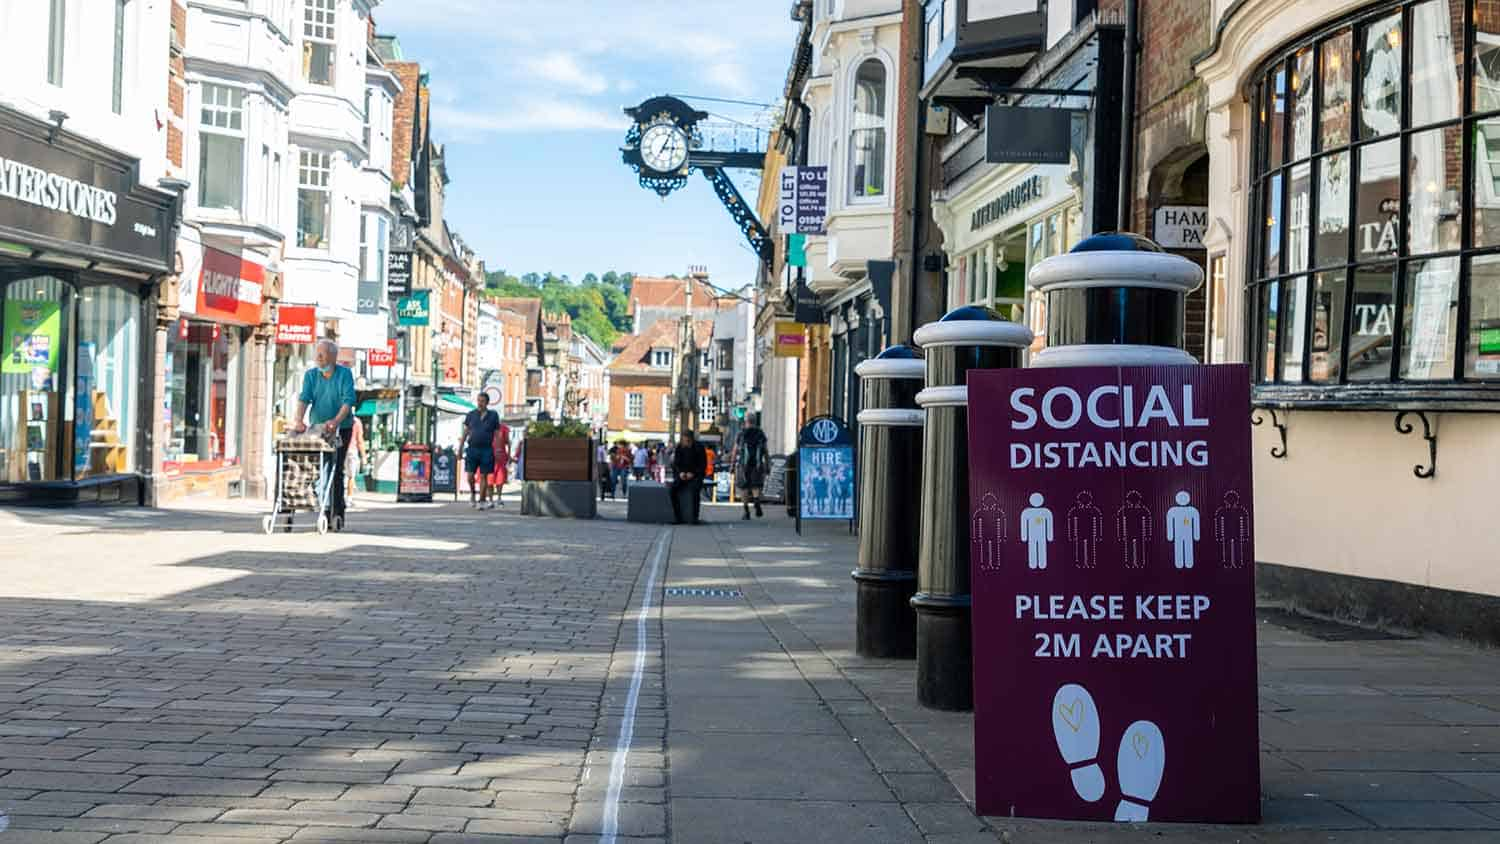 Social distancing sign in an old pedestrianised high street. Sign reads please keep 2m apart.